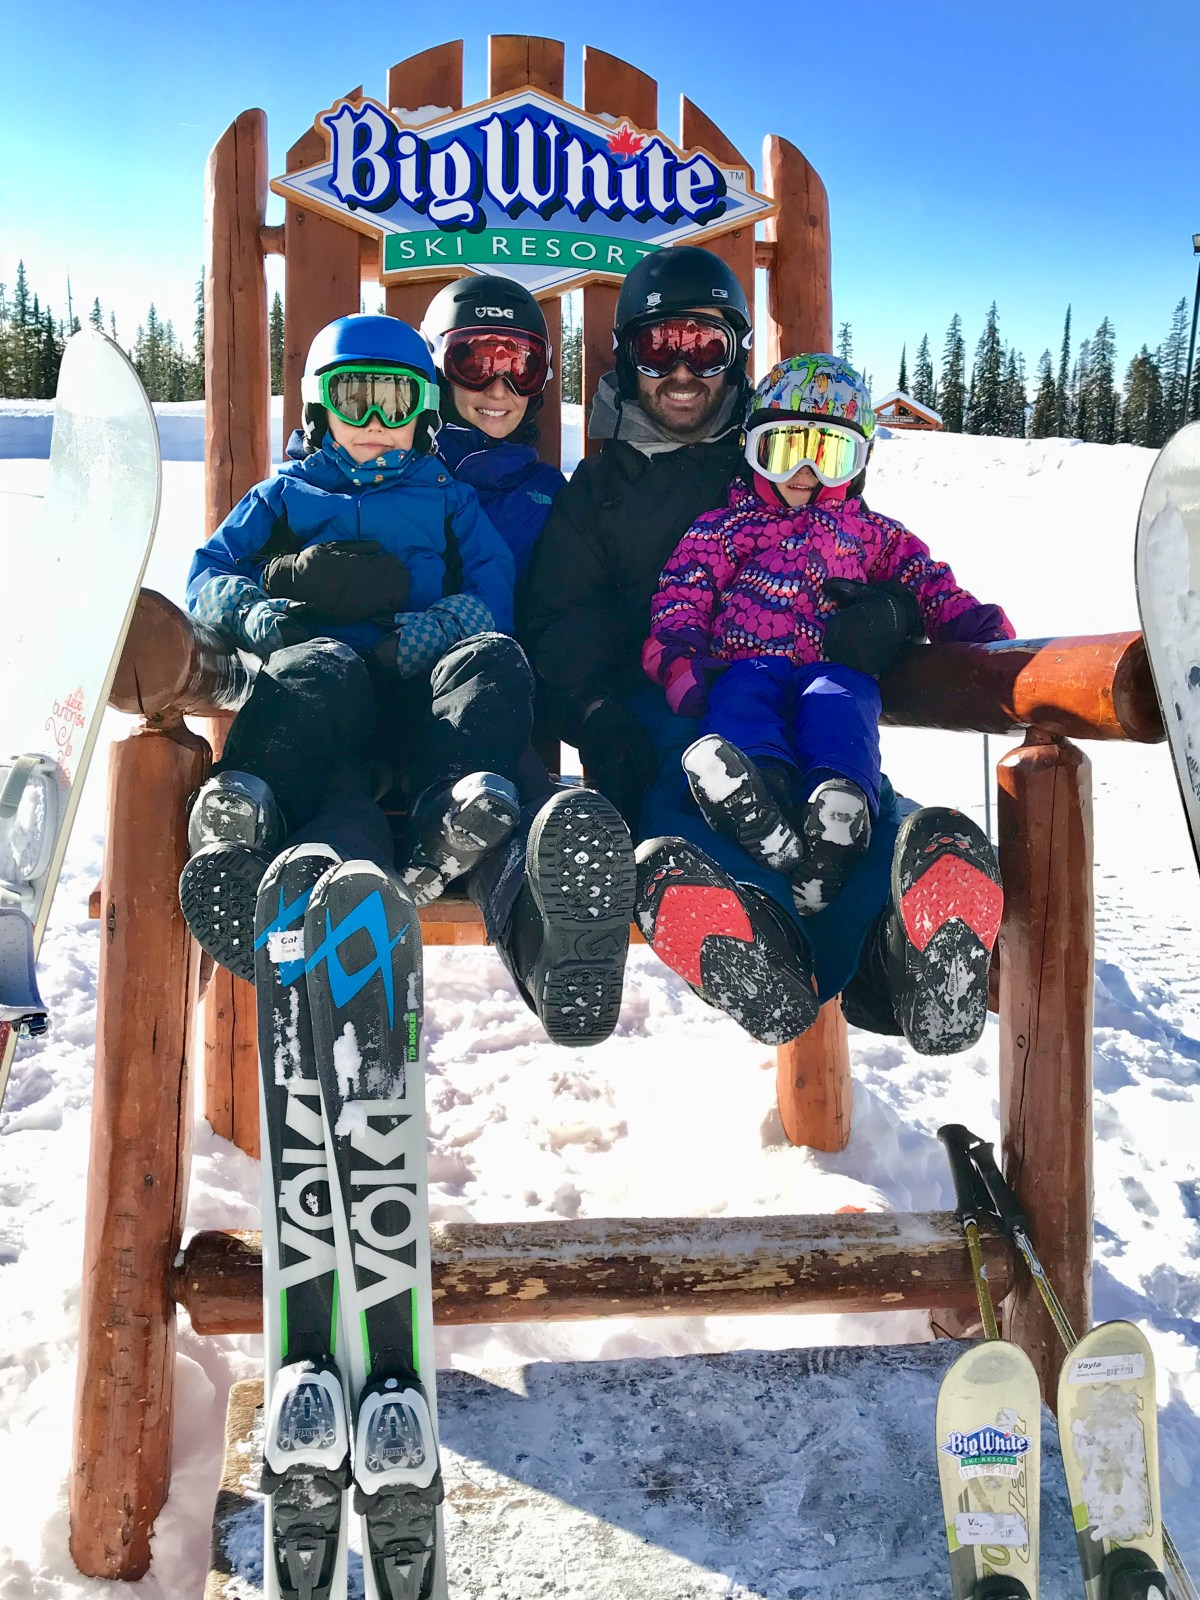 Best family ski resorts Canada: 6 reasons to visit Big White